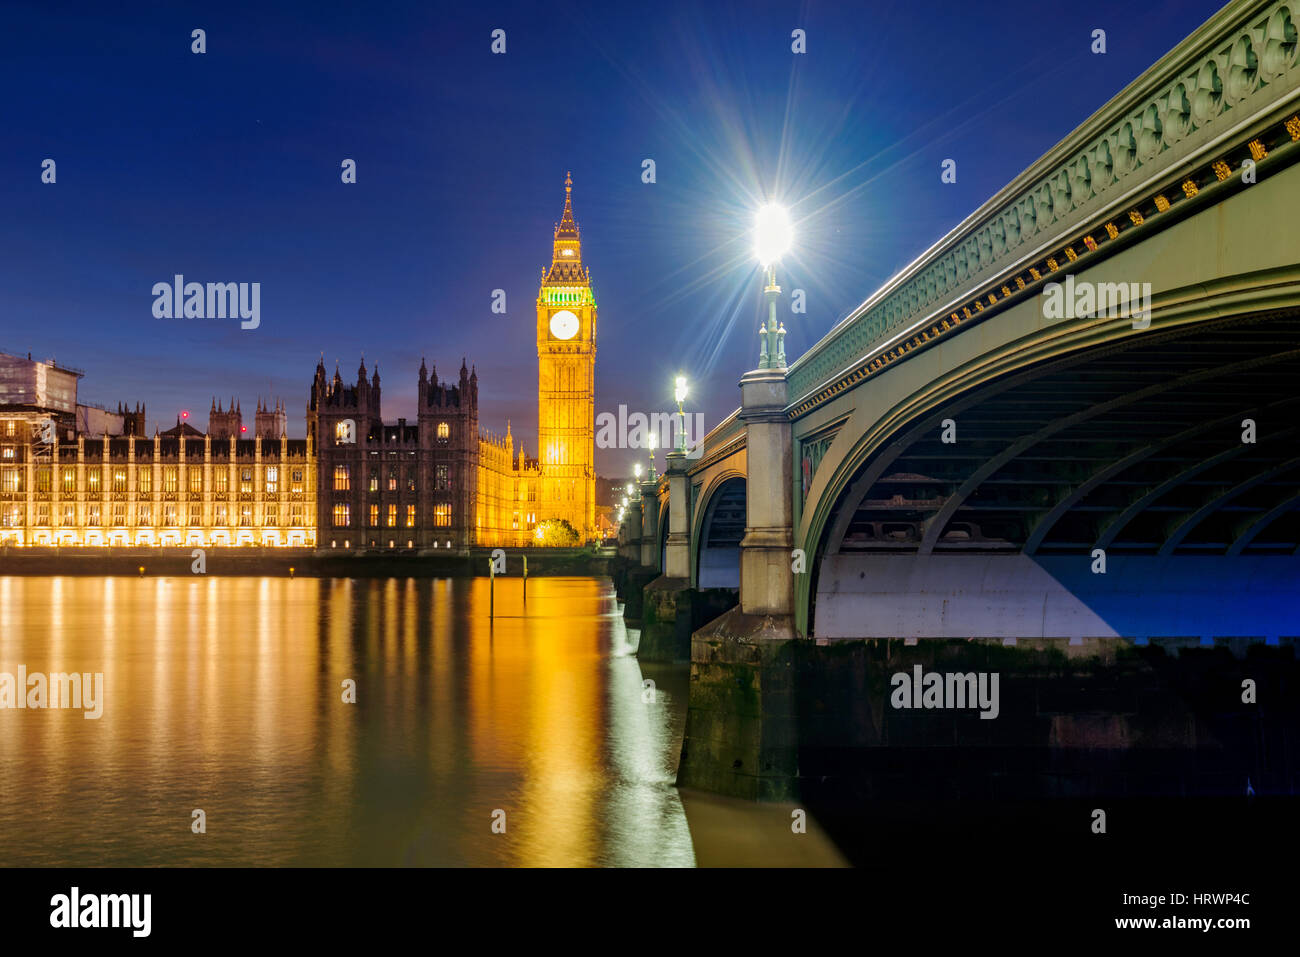 View of Houses of Parliament and River Thames at night - Stock Image